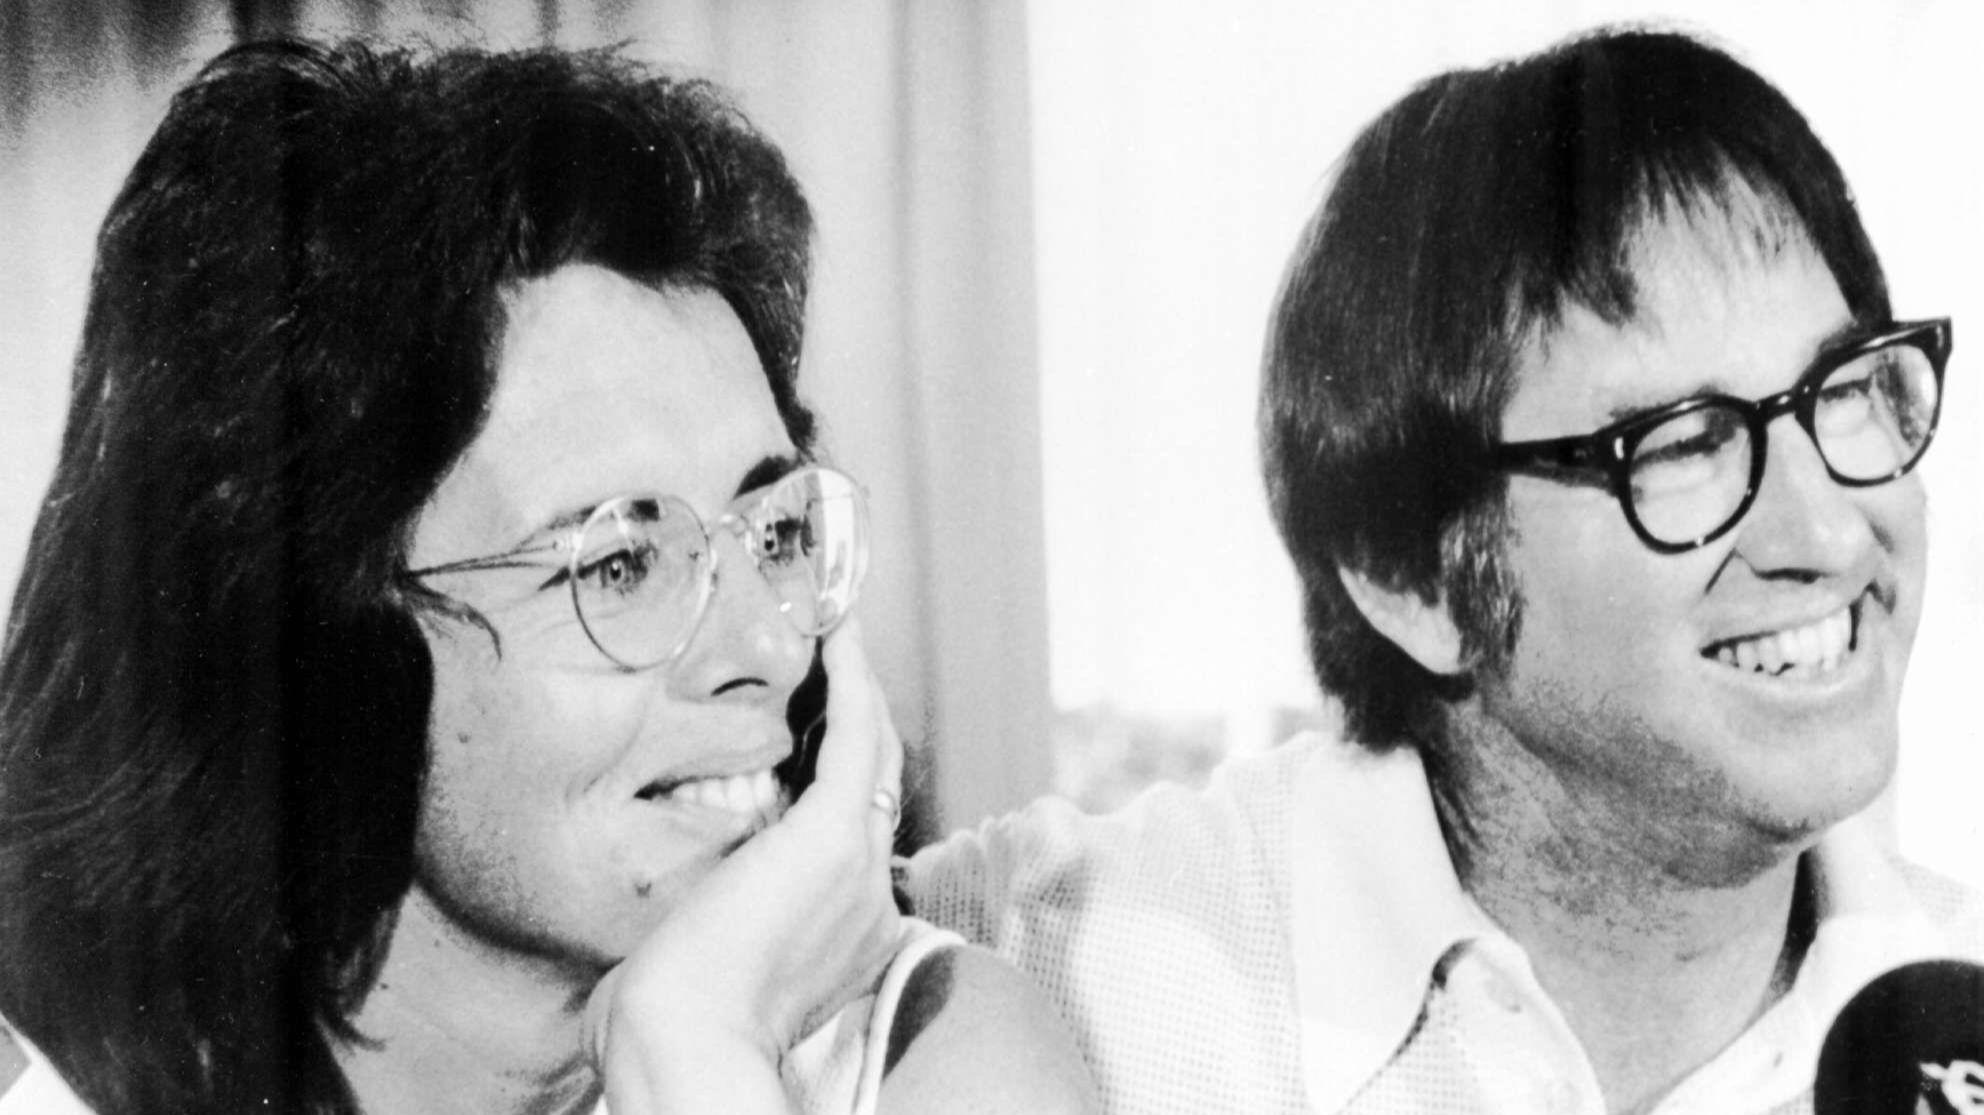 Billie Jean King and Bobby Riggs publicizing their upcoming match at a news conference in New York on July 11, 1973. (AP Photo)